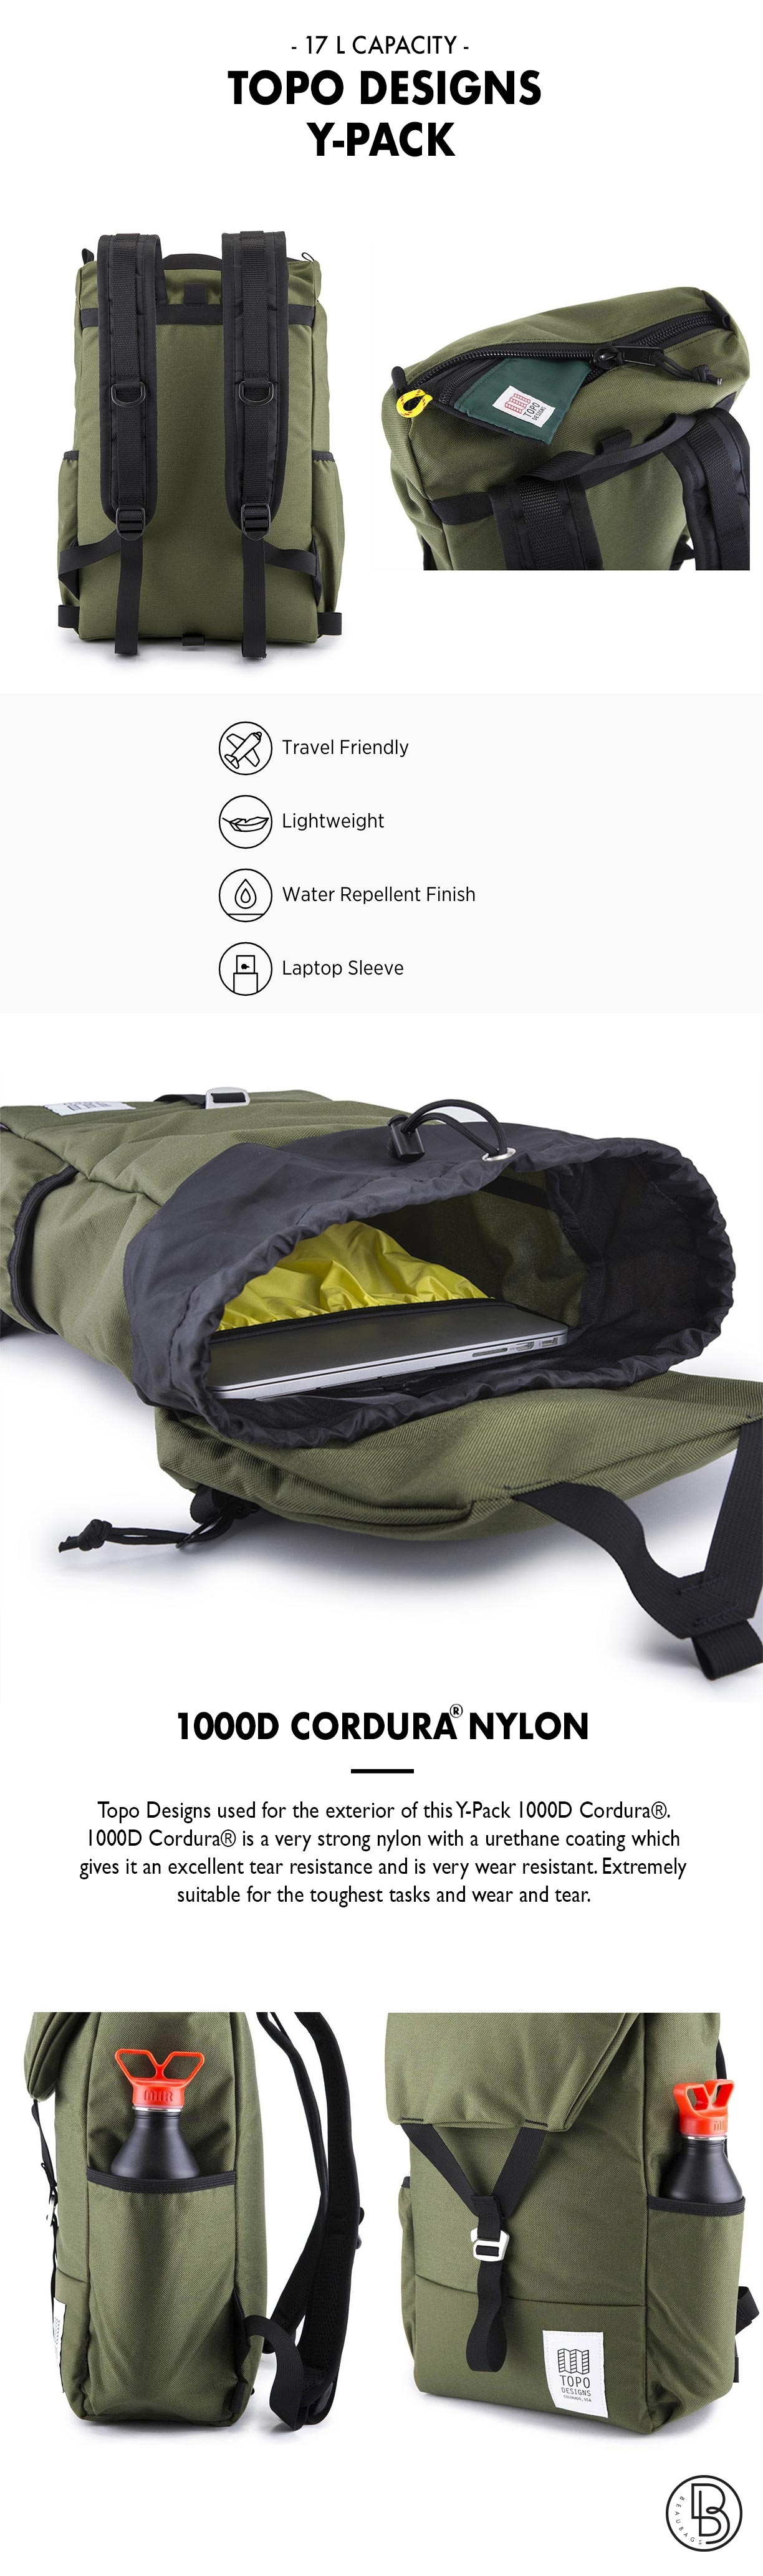 Topo Designs Y-Pack Olive productinformation